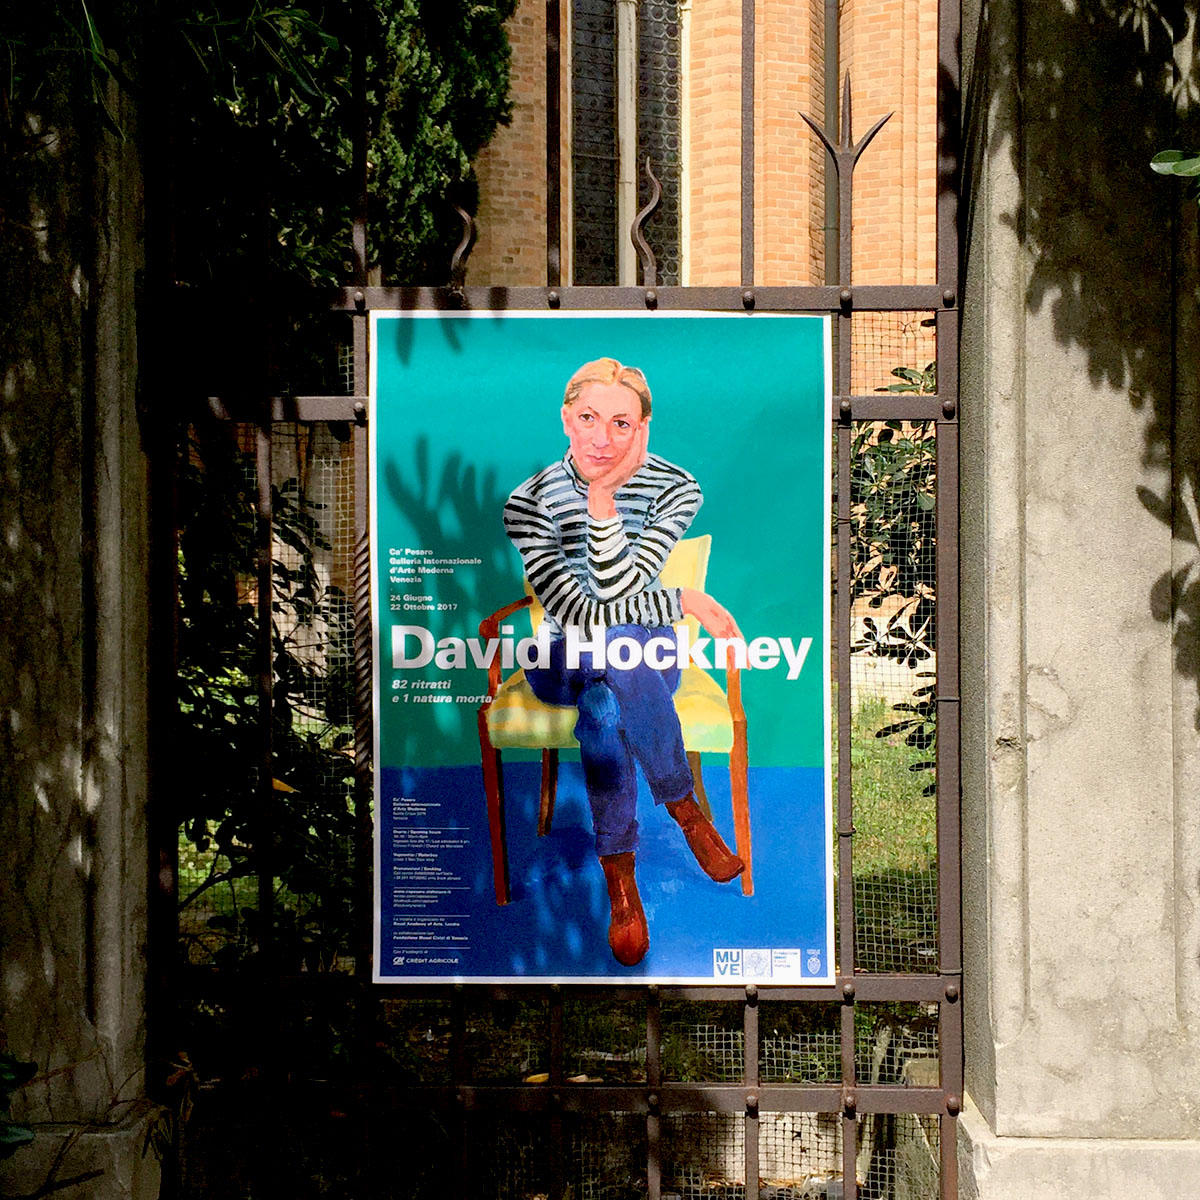 David-Hockney82-Portraits-and-1-Still-life-002